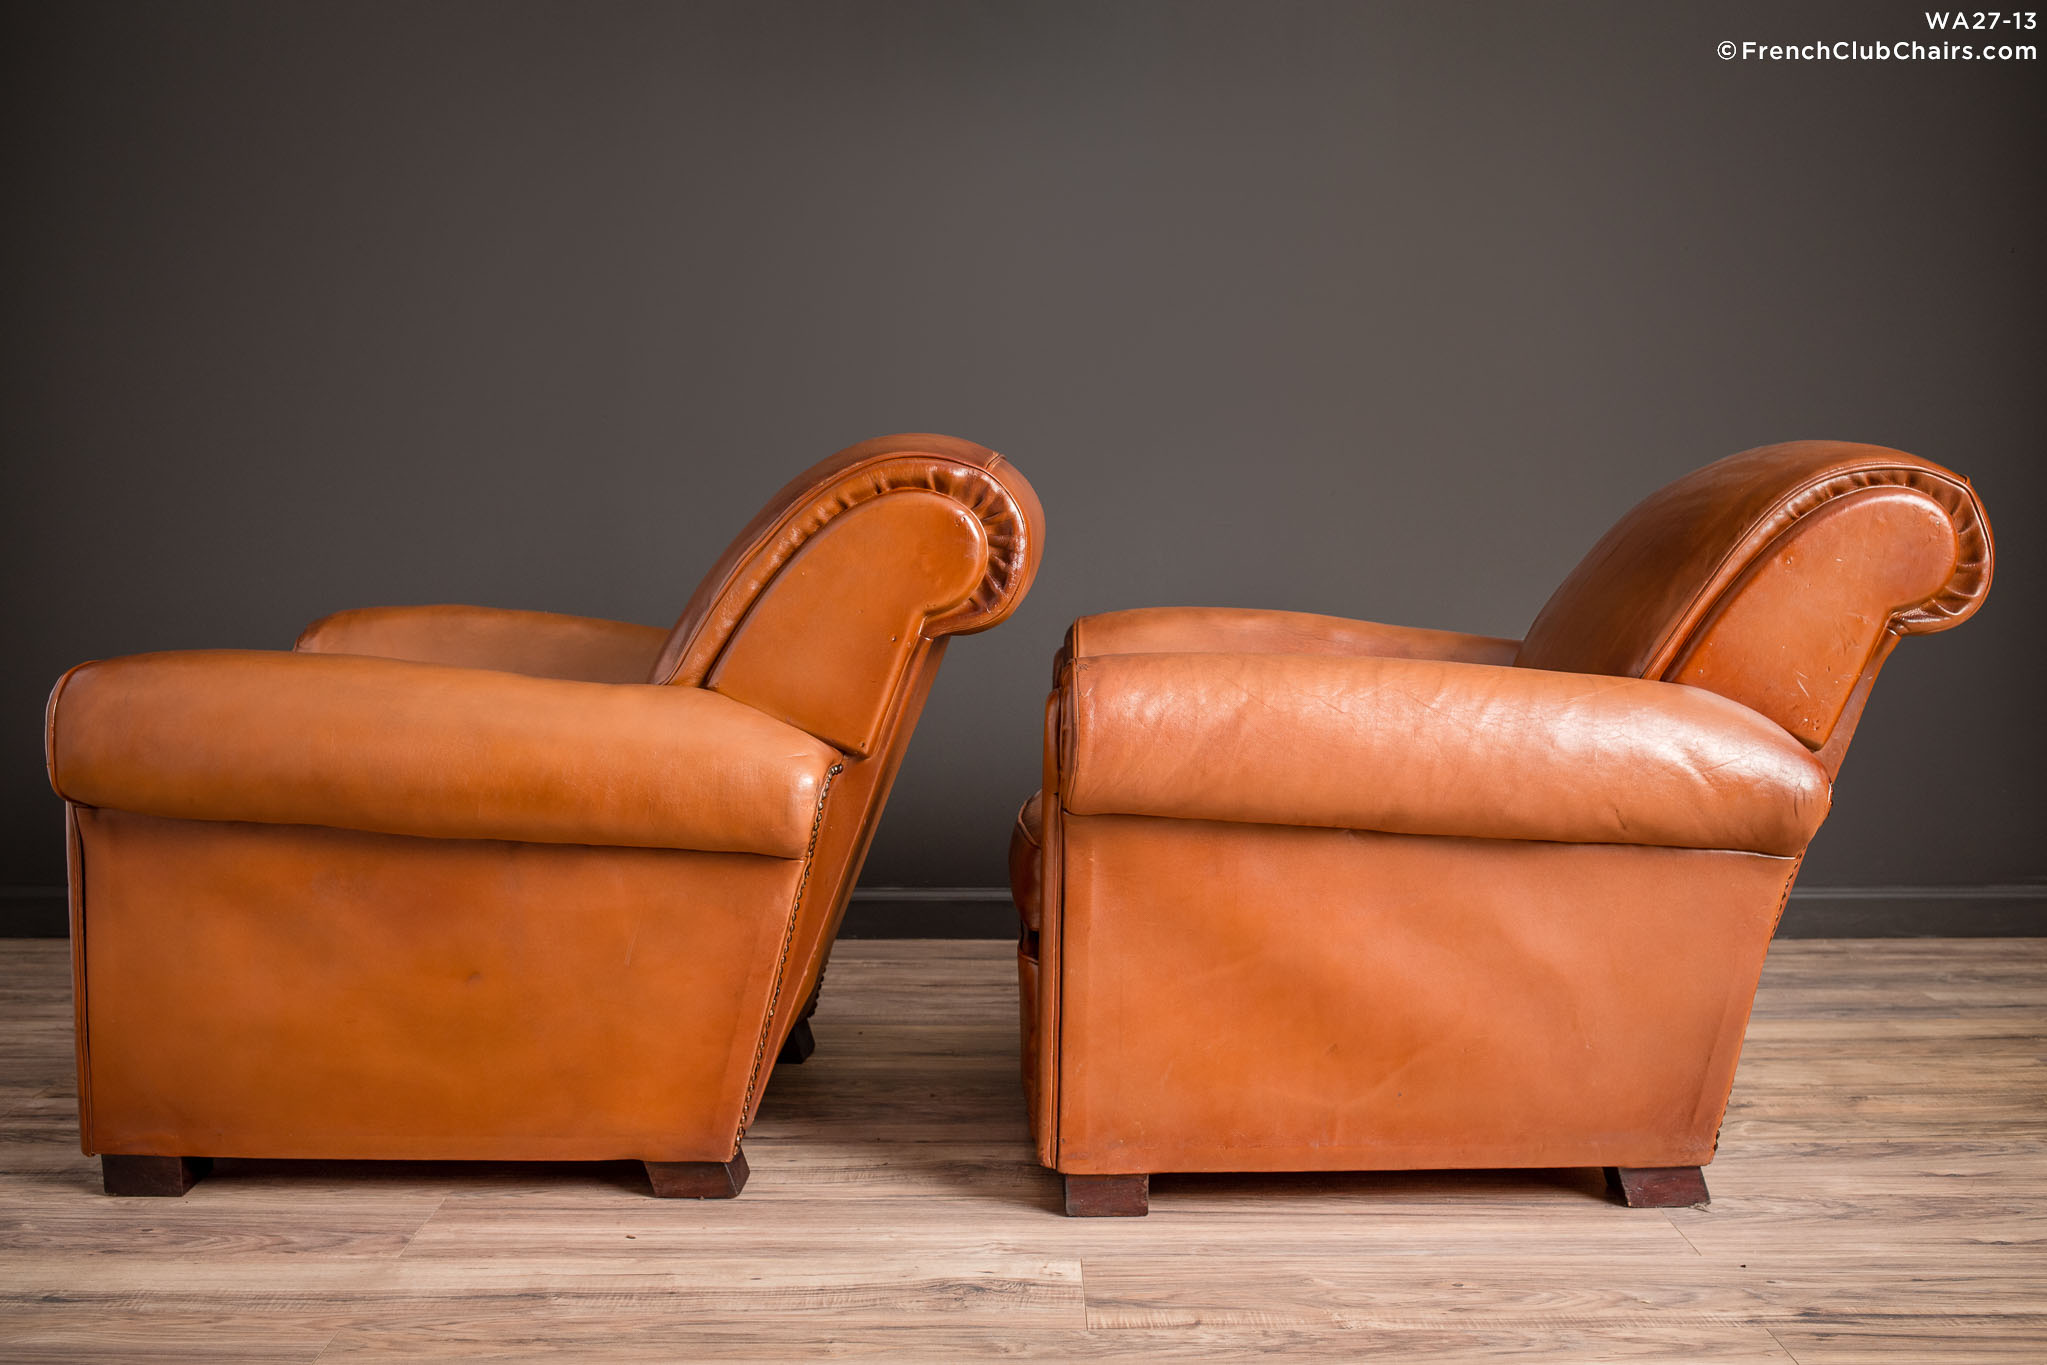 WA_27-13_La_Ministre_Rollback_Lounge_Pair_R_4LT-v01-williams-antiks-leather-french-club-chair-wa_fcccom